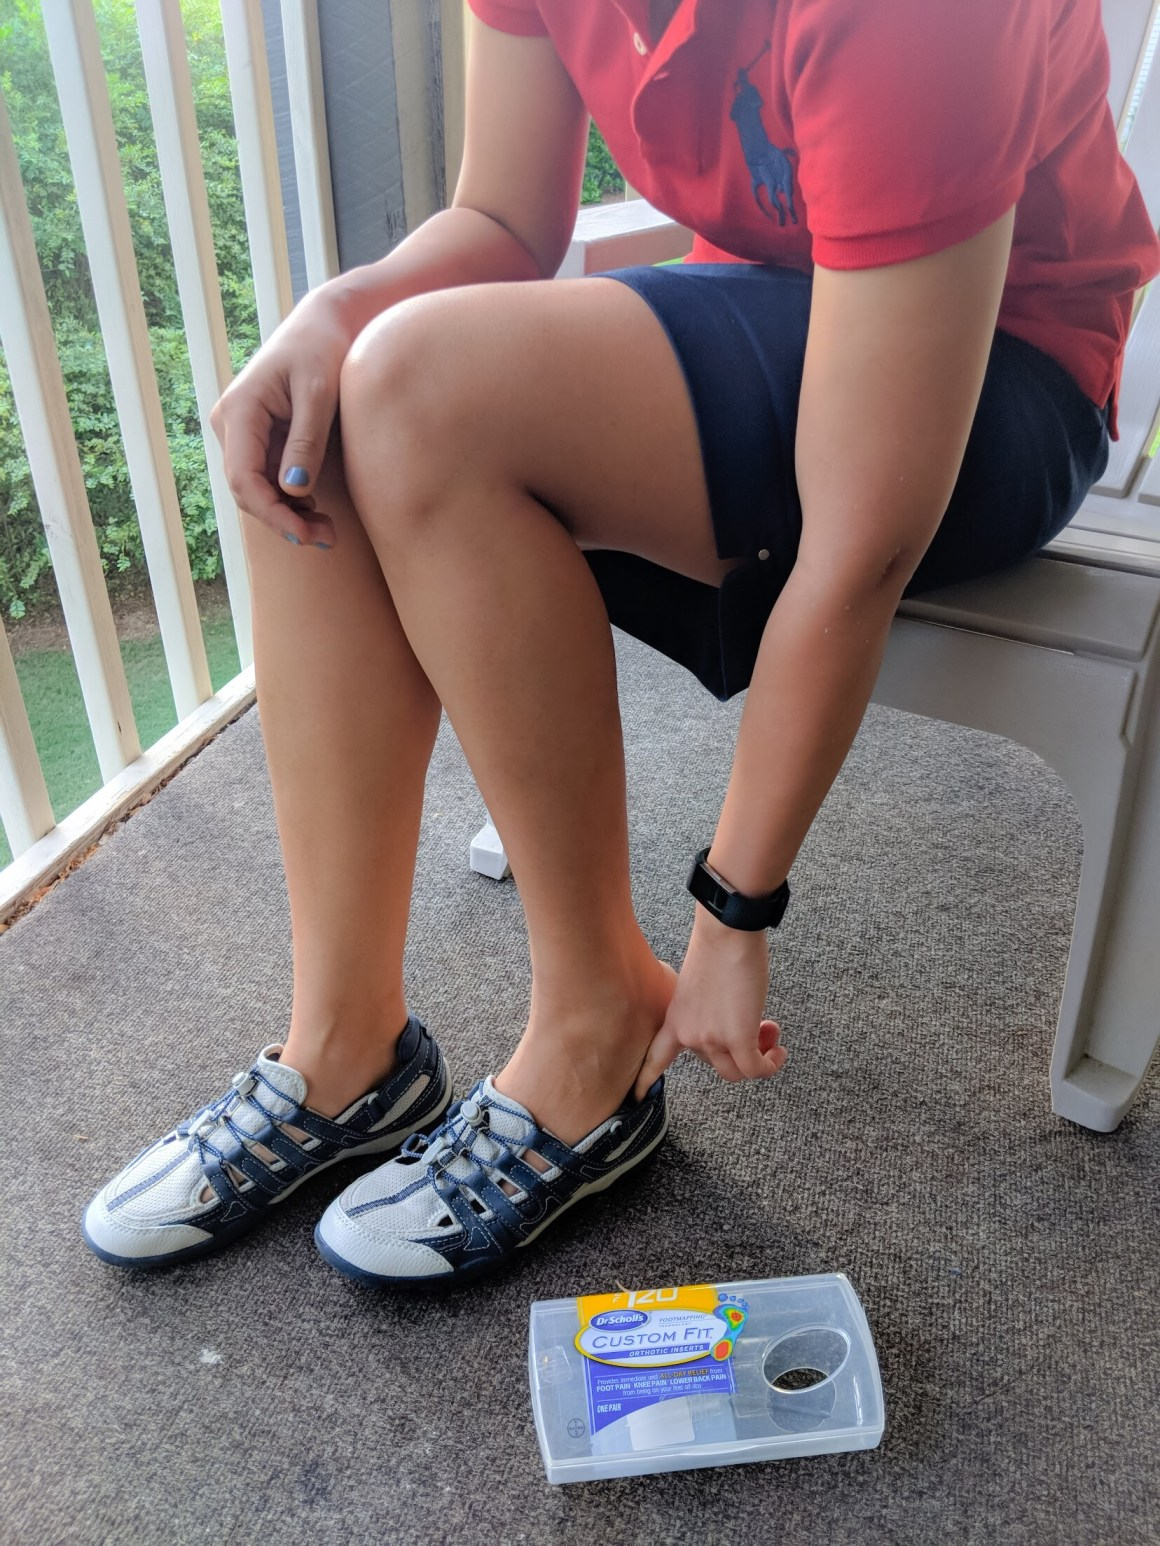 Out & about with Dr. Scholl's® Custom Fit® Orthotic Inserts